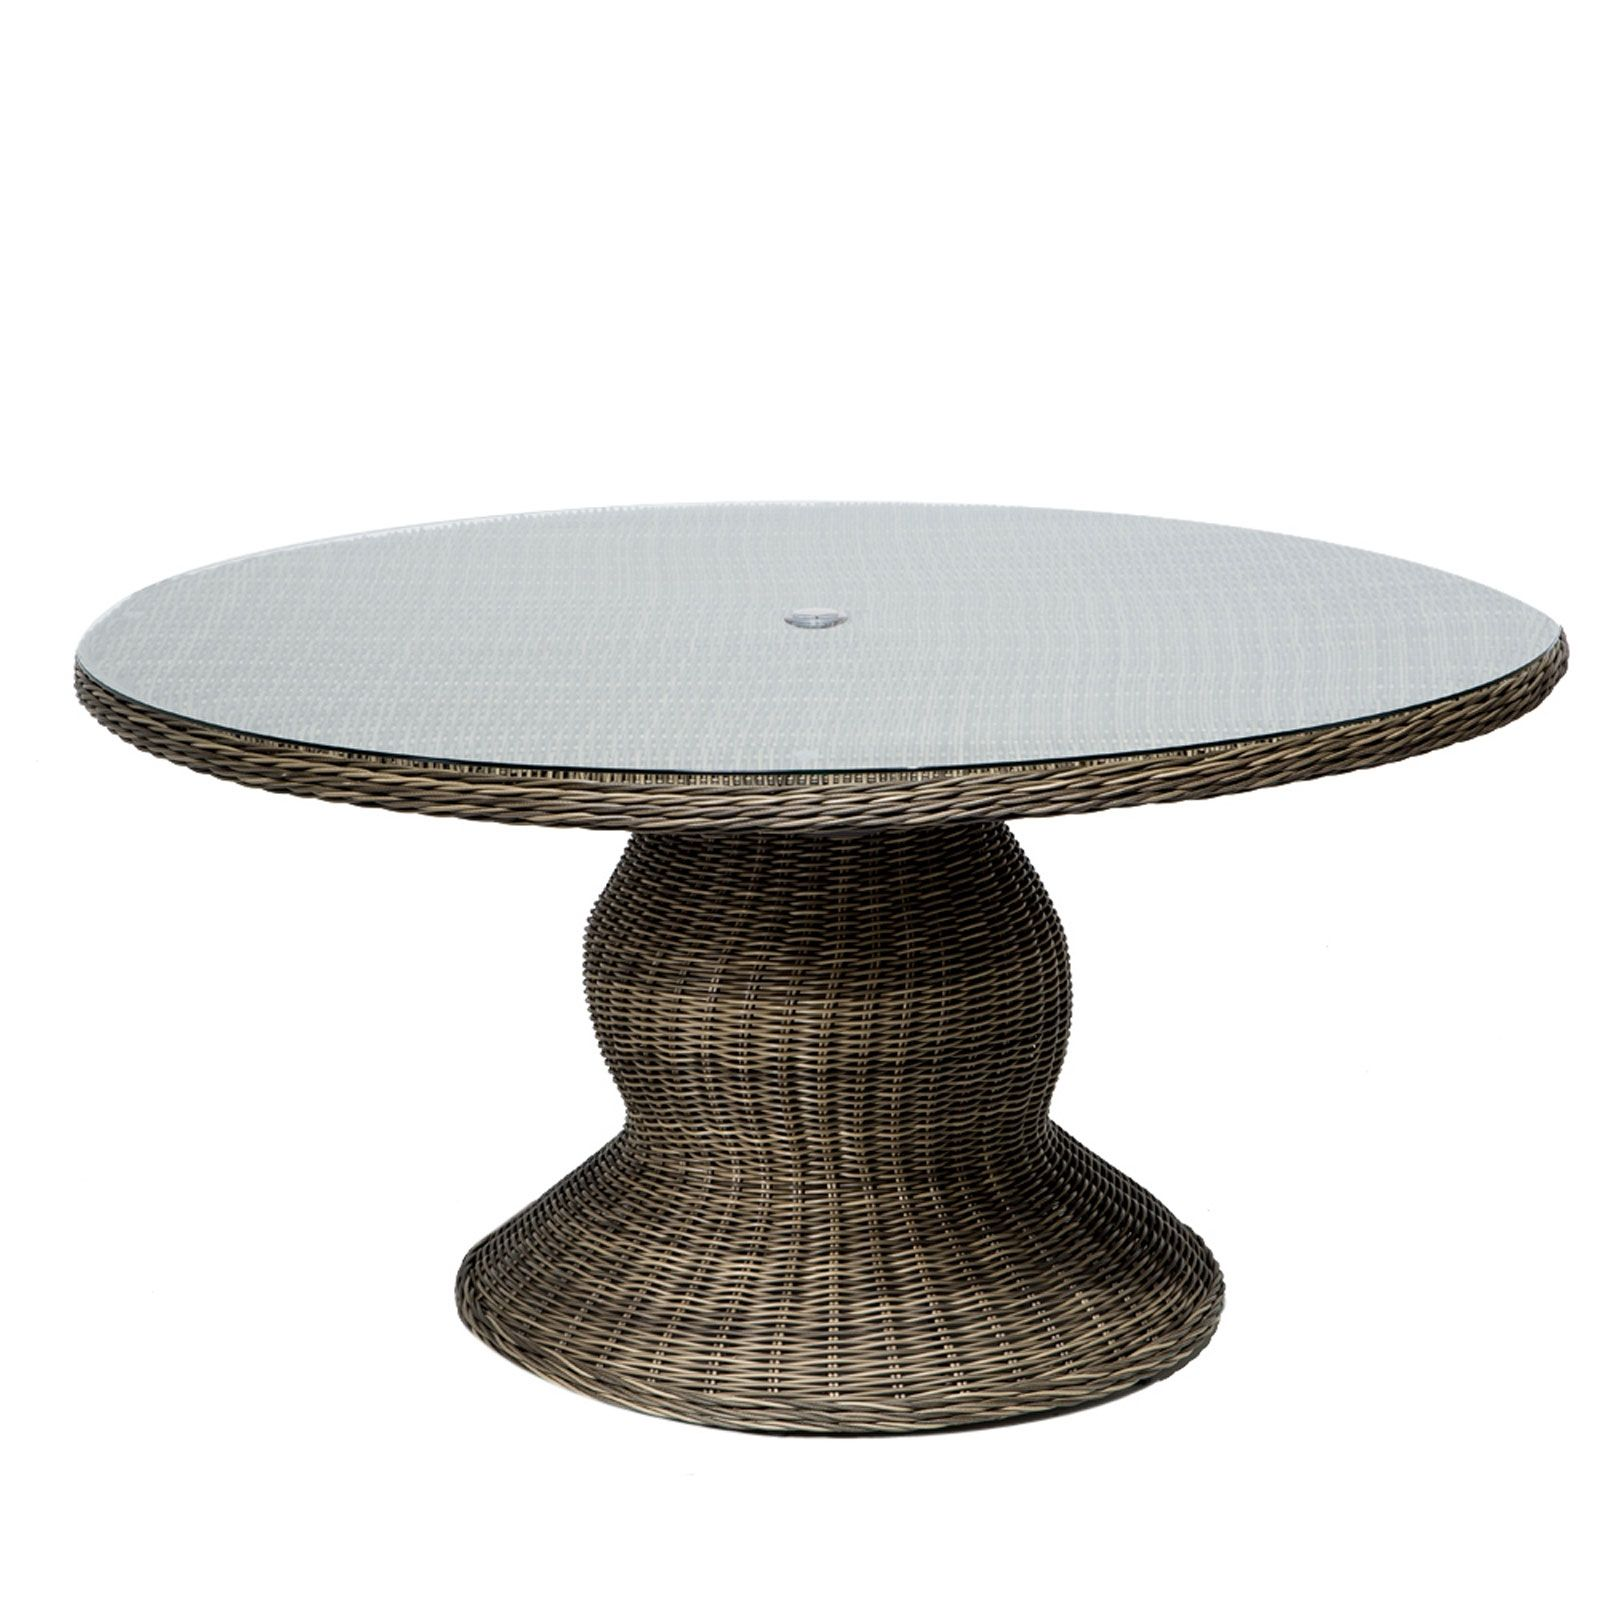 60 Round Plexiglass Table Top